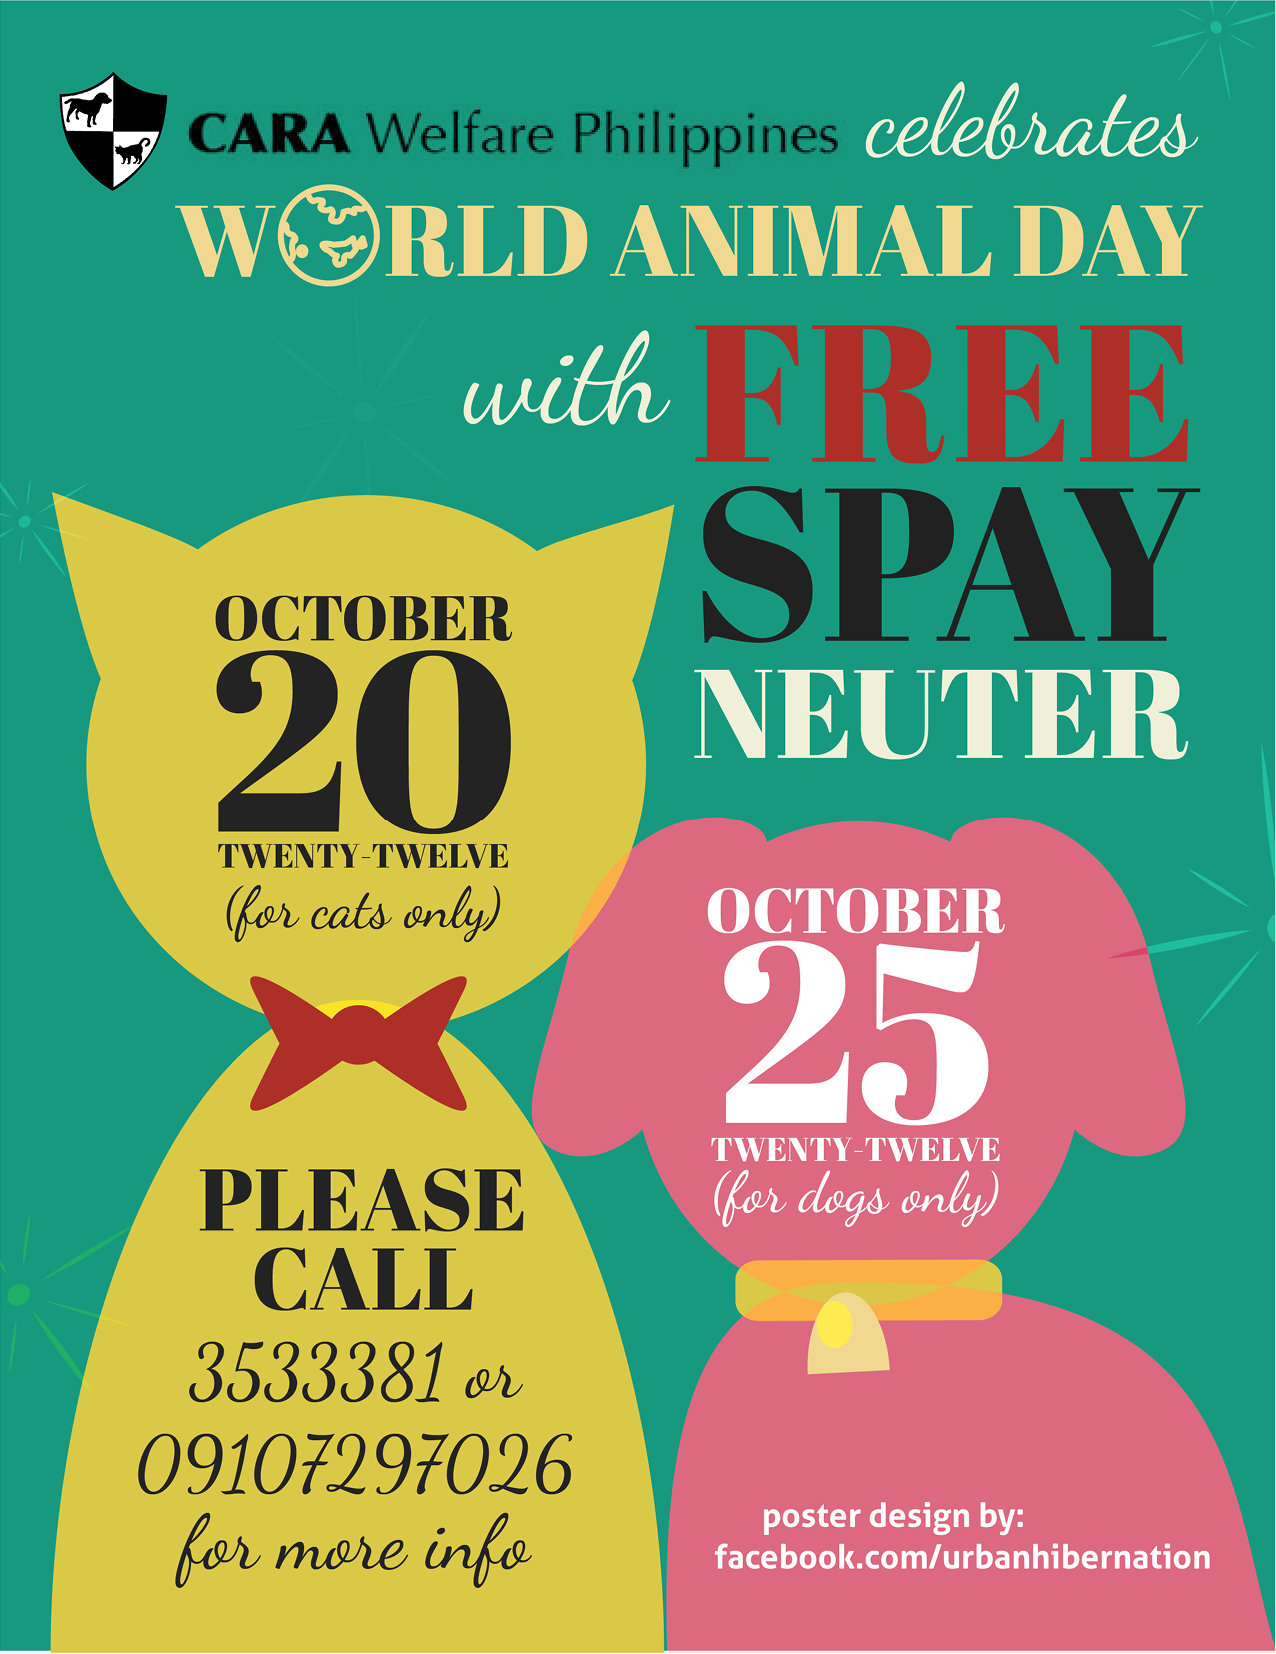 World Animal Day! – Free spay/neuter at the CARA clinic